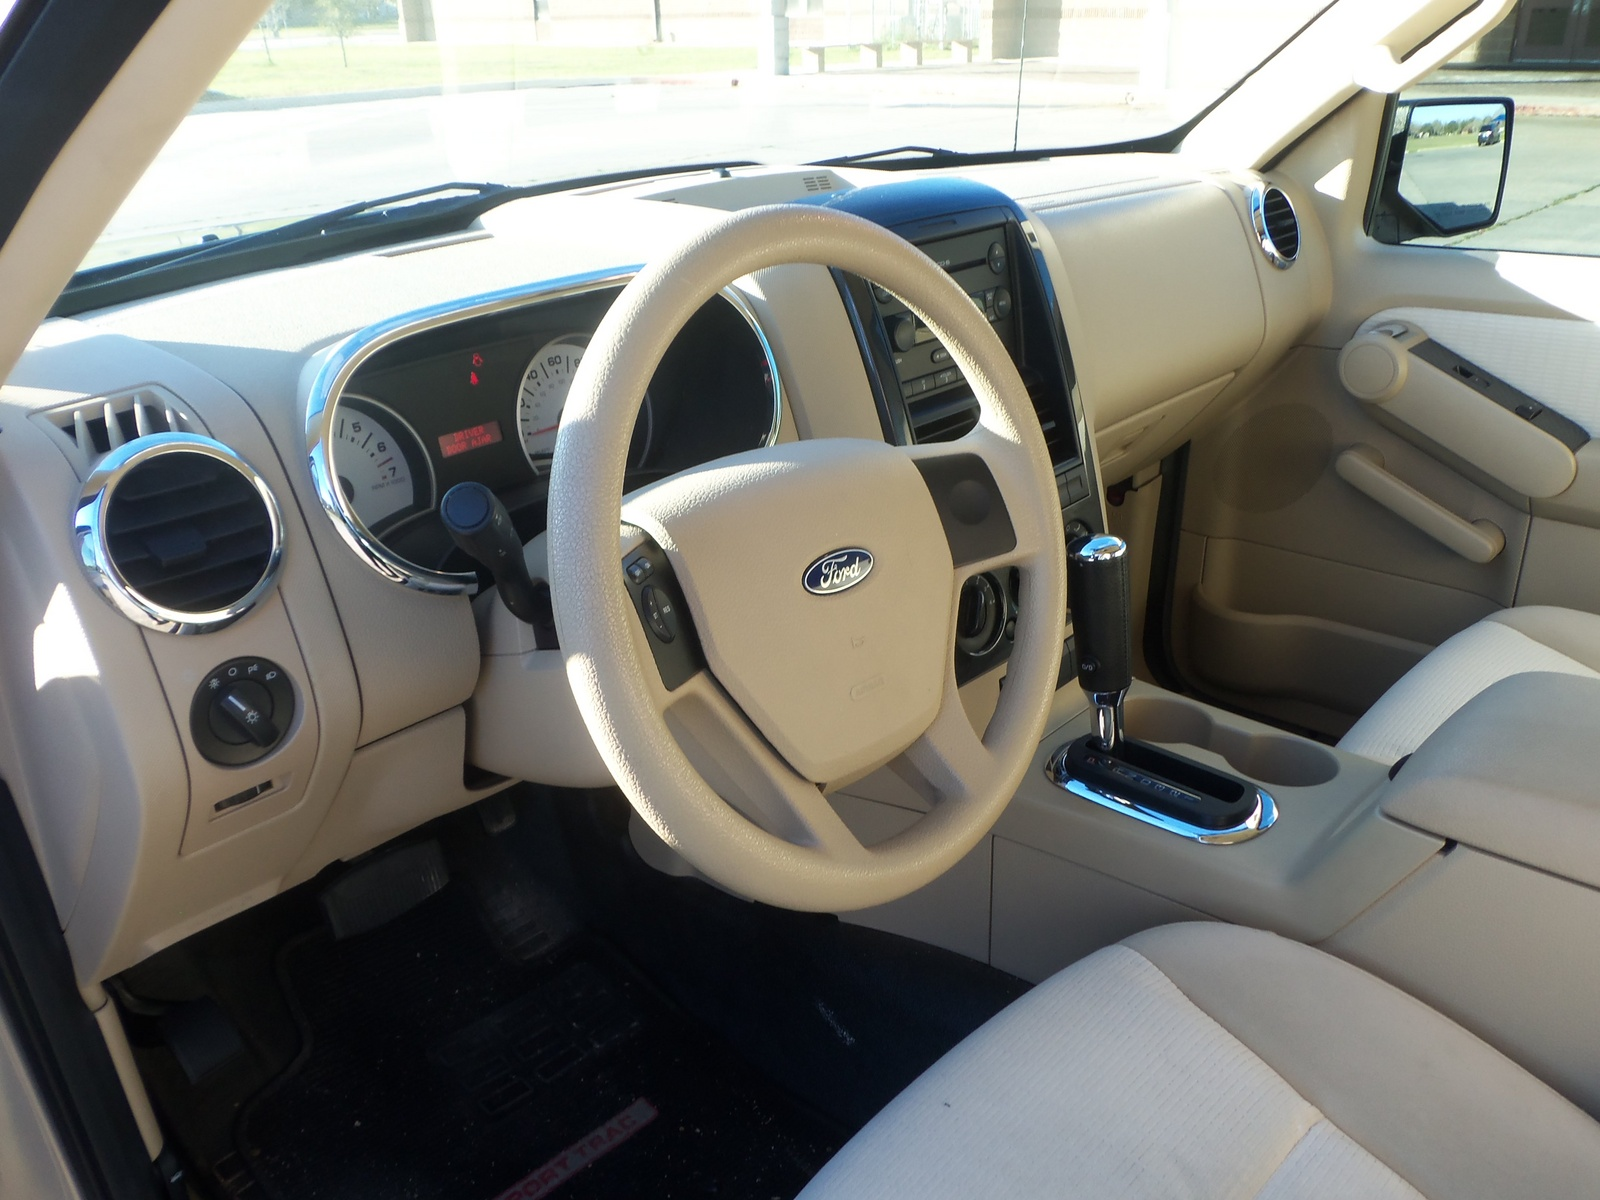 2007 ford explorer sport trac pictures cargurus - Ford explorer sport trac interior parts ...